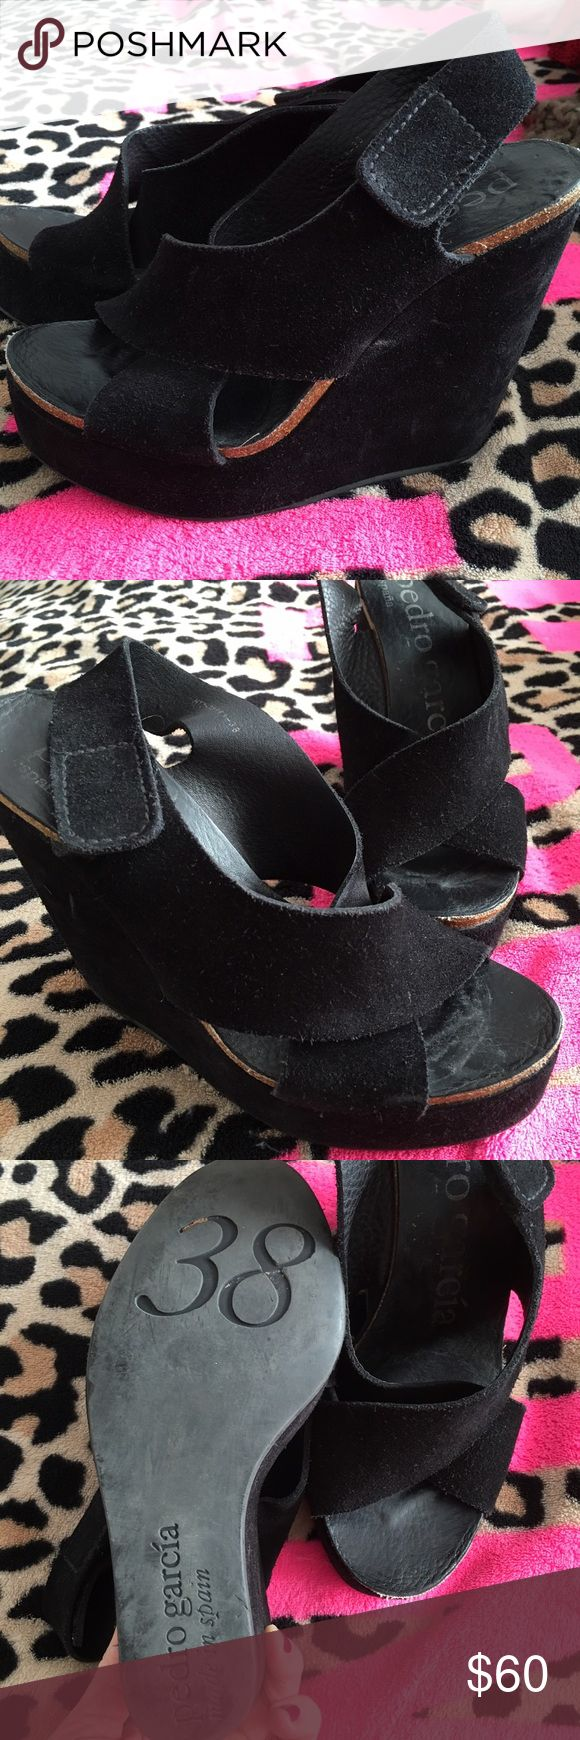 Pedro Garcia Suede Wedges Pedro Garcia black suede wedges used but these shoes will last forever. Size 38 (8) Pedro Garcia Shoes Wedges